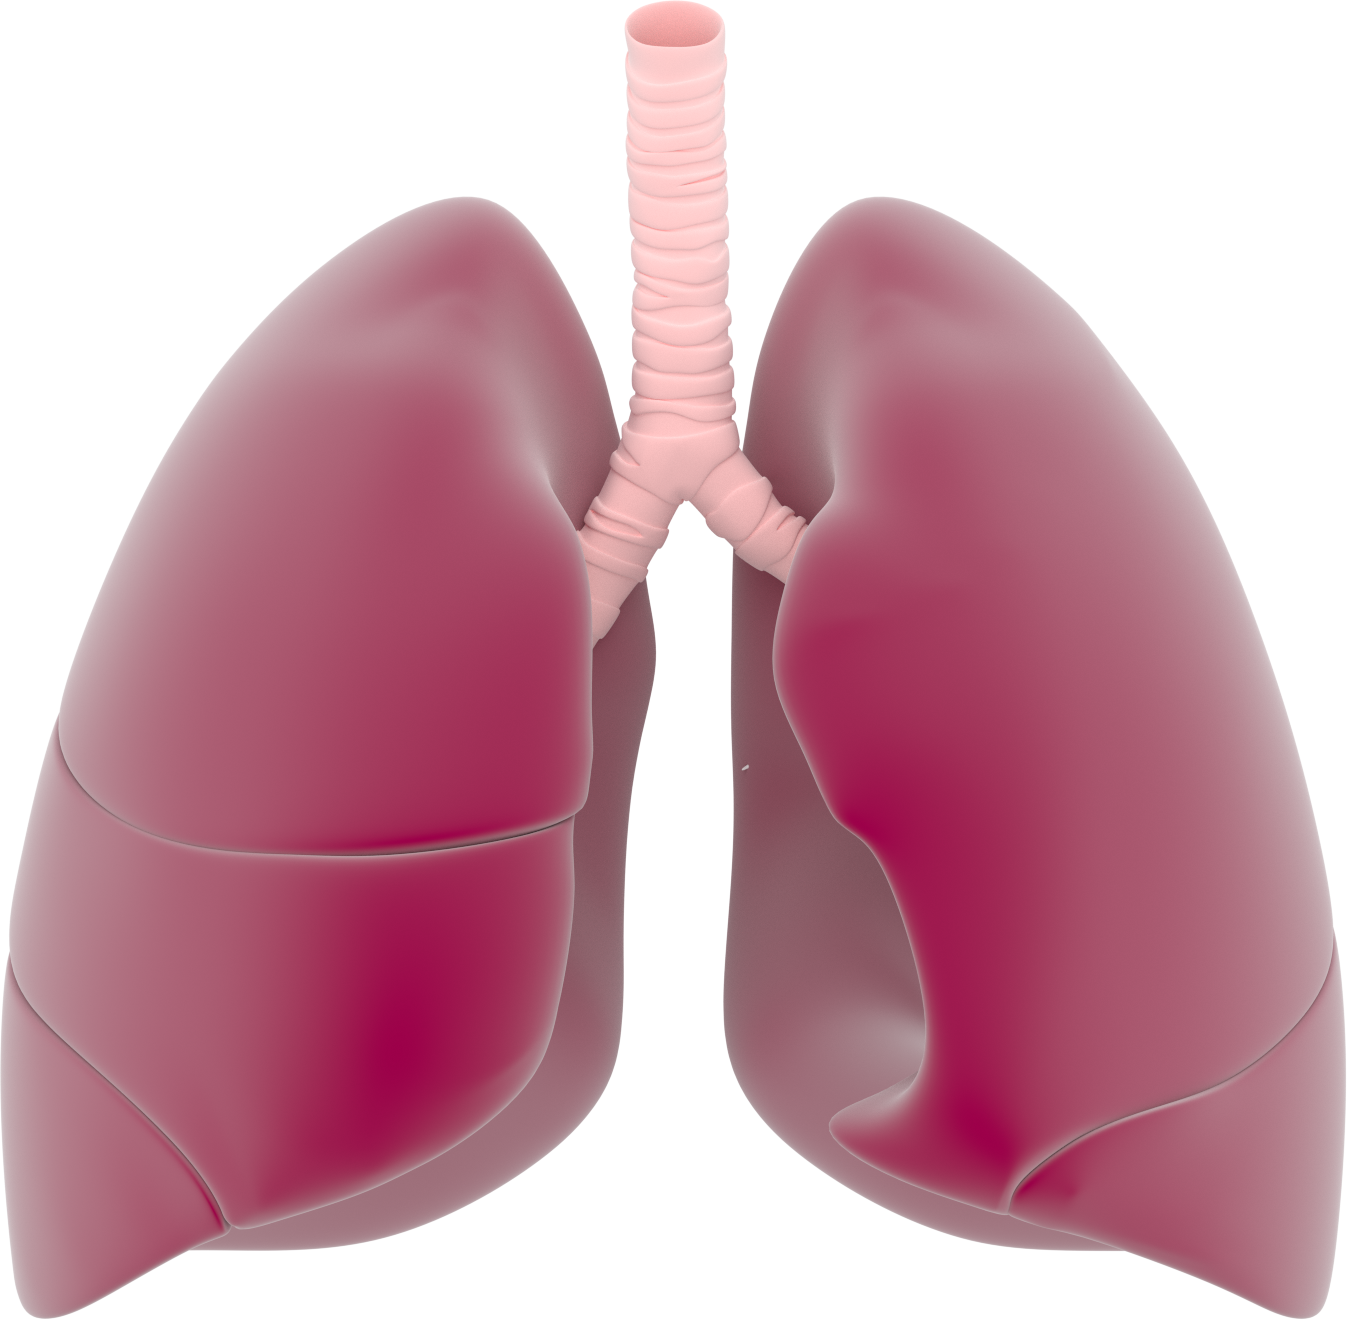 Presentation name on emaze. Lungs clipart respiration